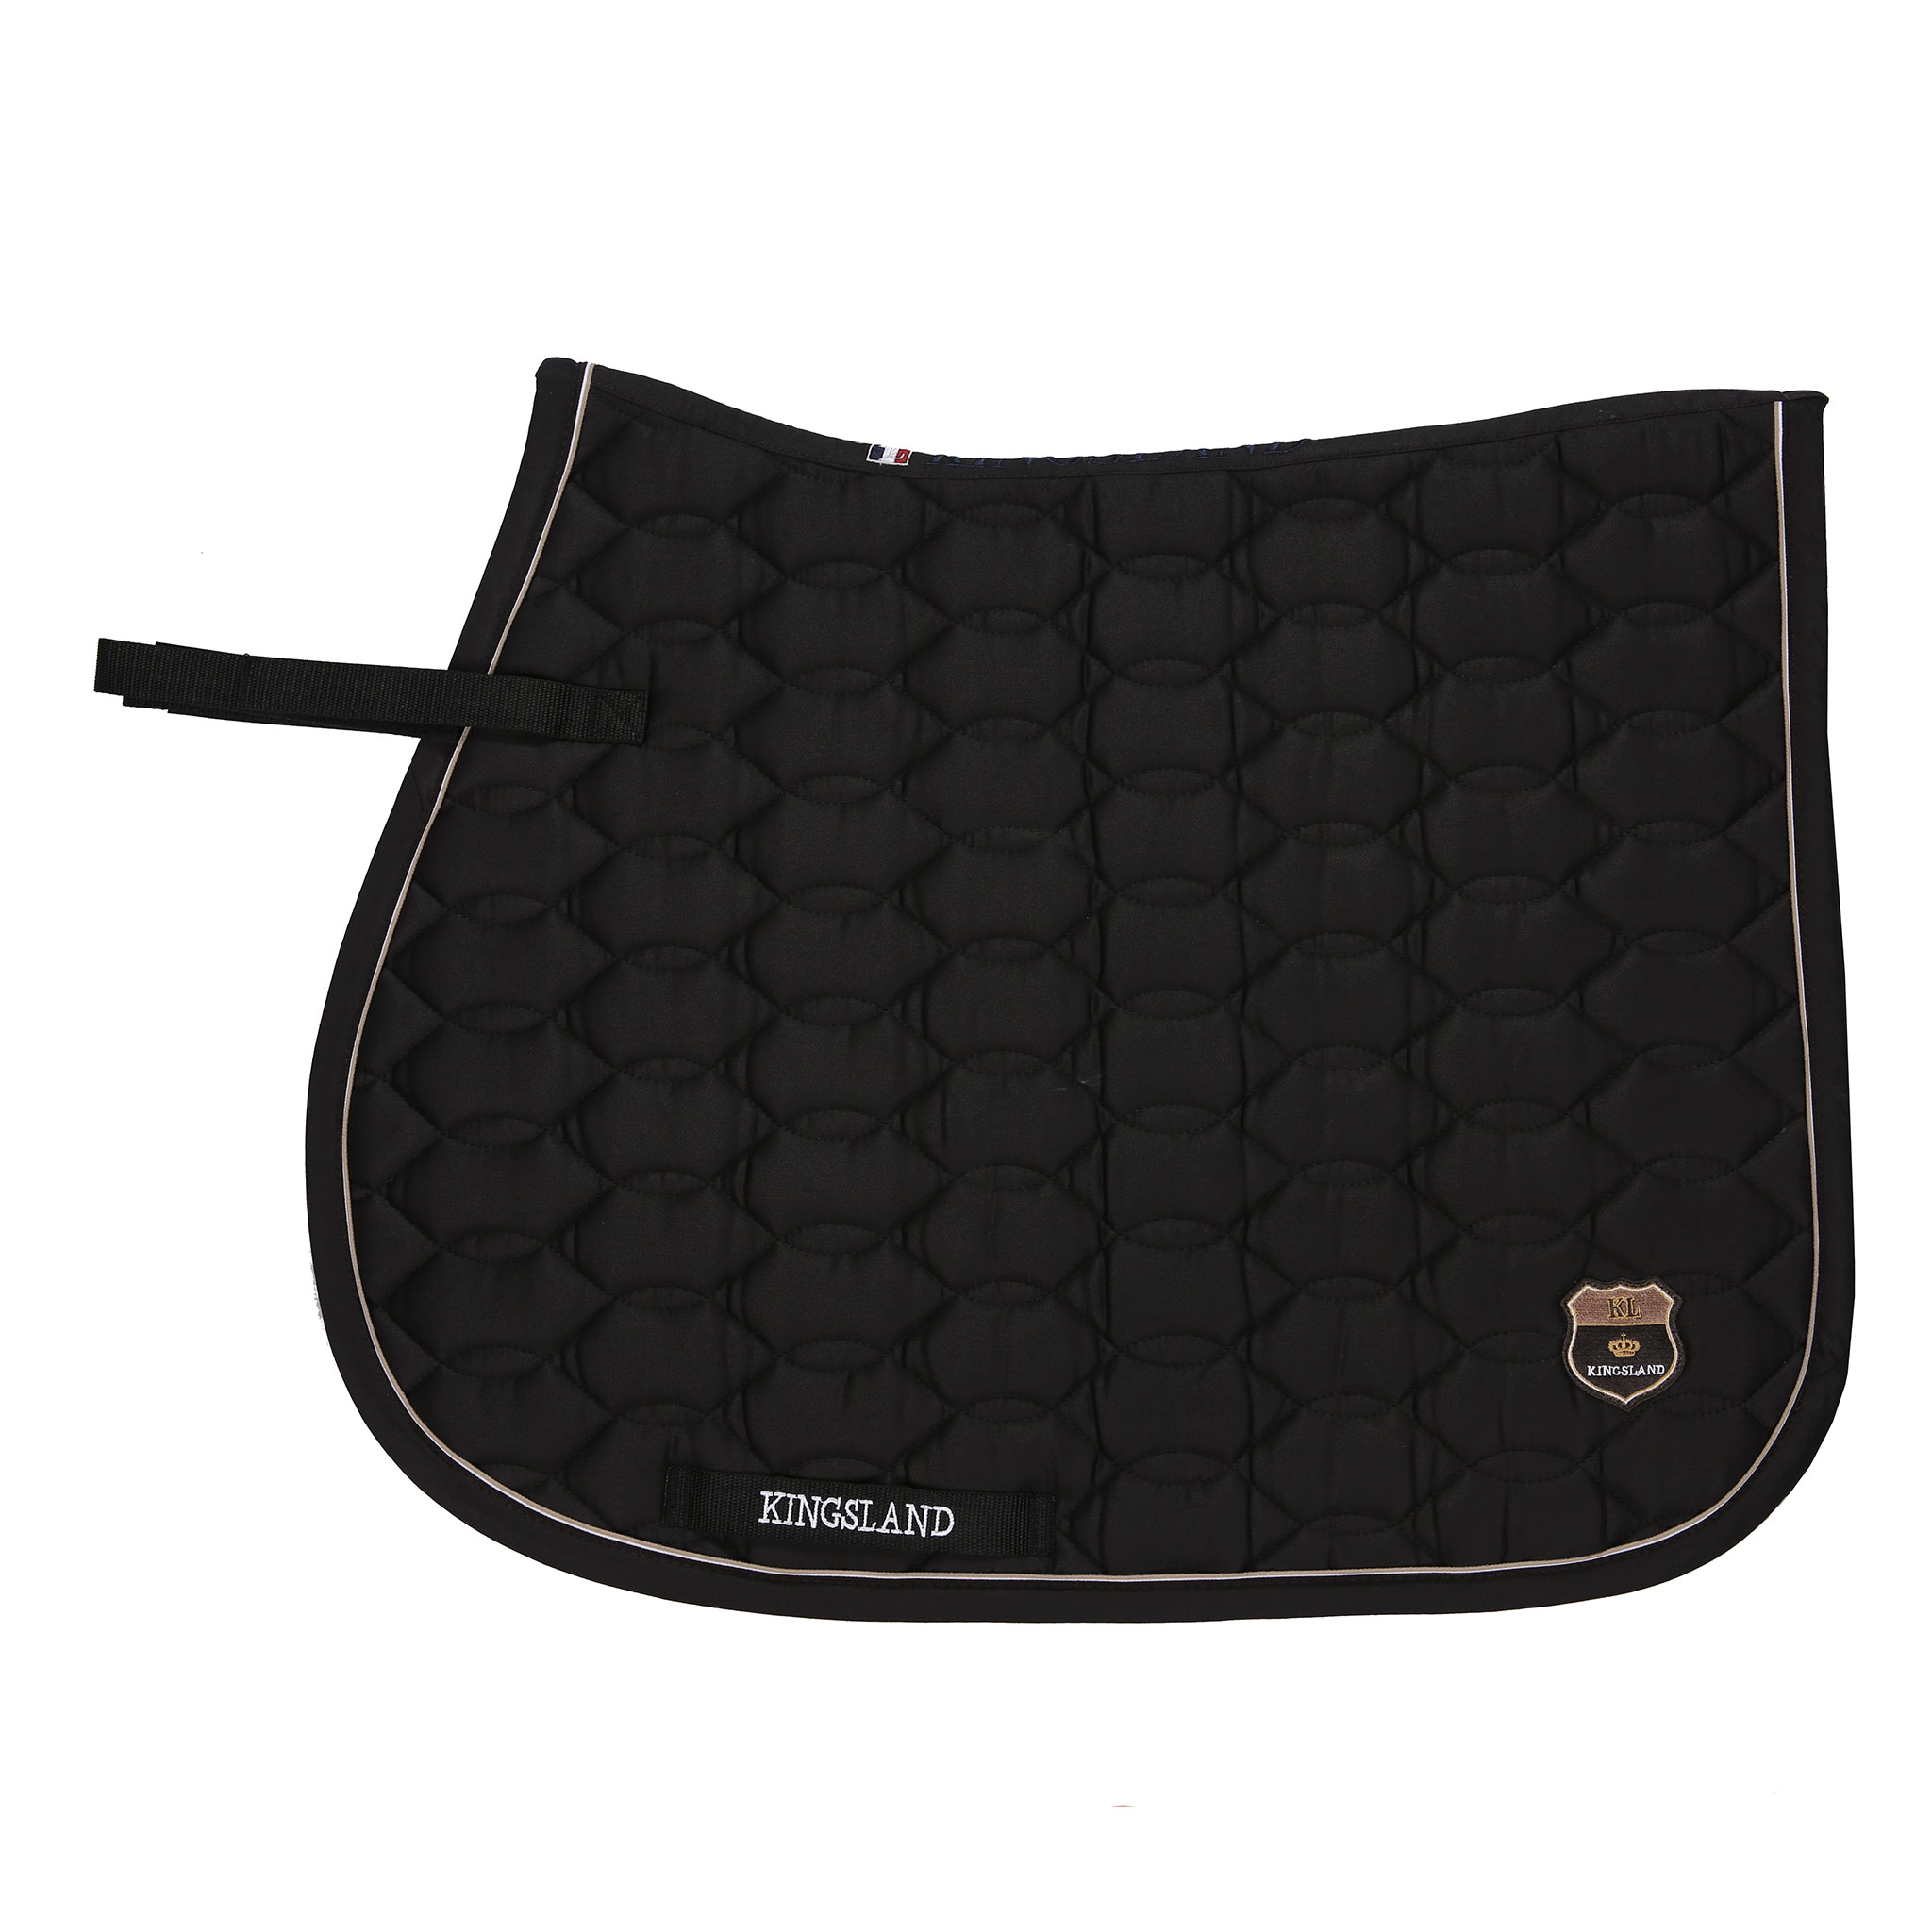 KINGSLAND KASPER BROWN SADDLE PAD